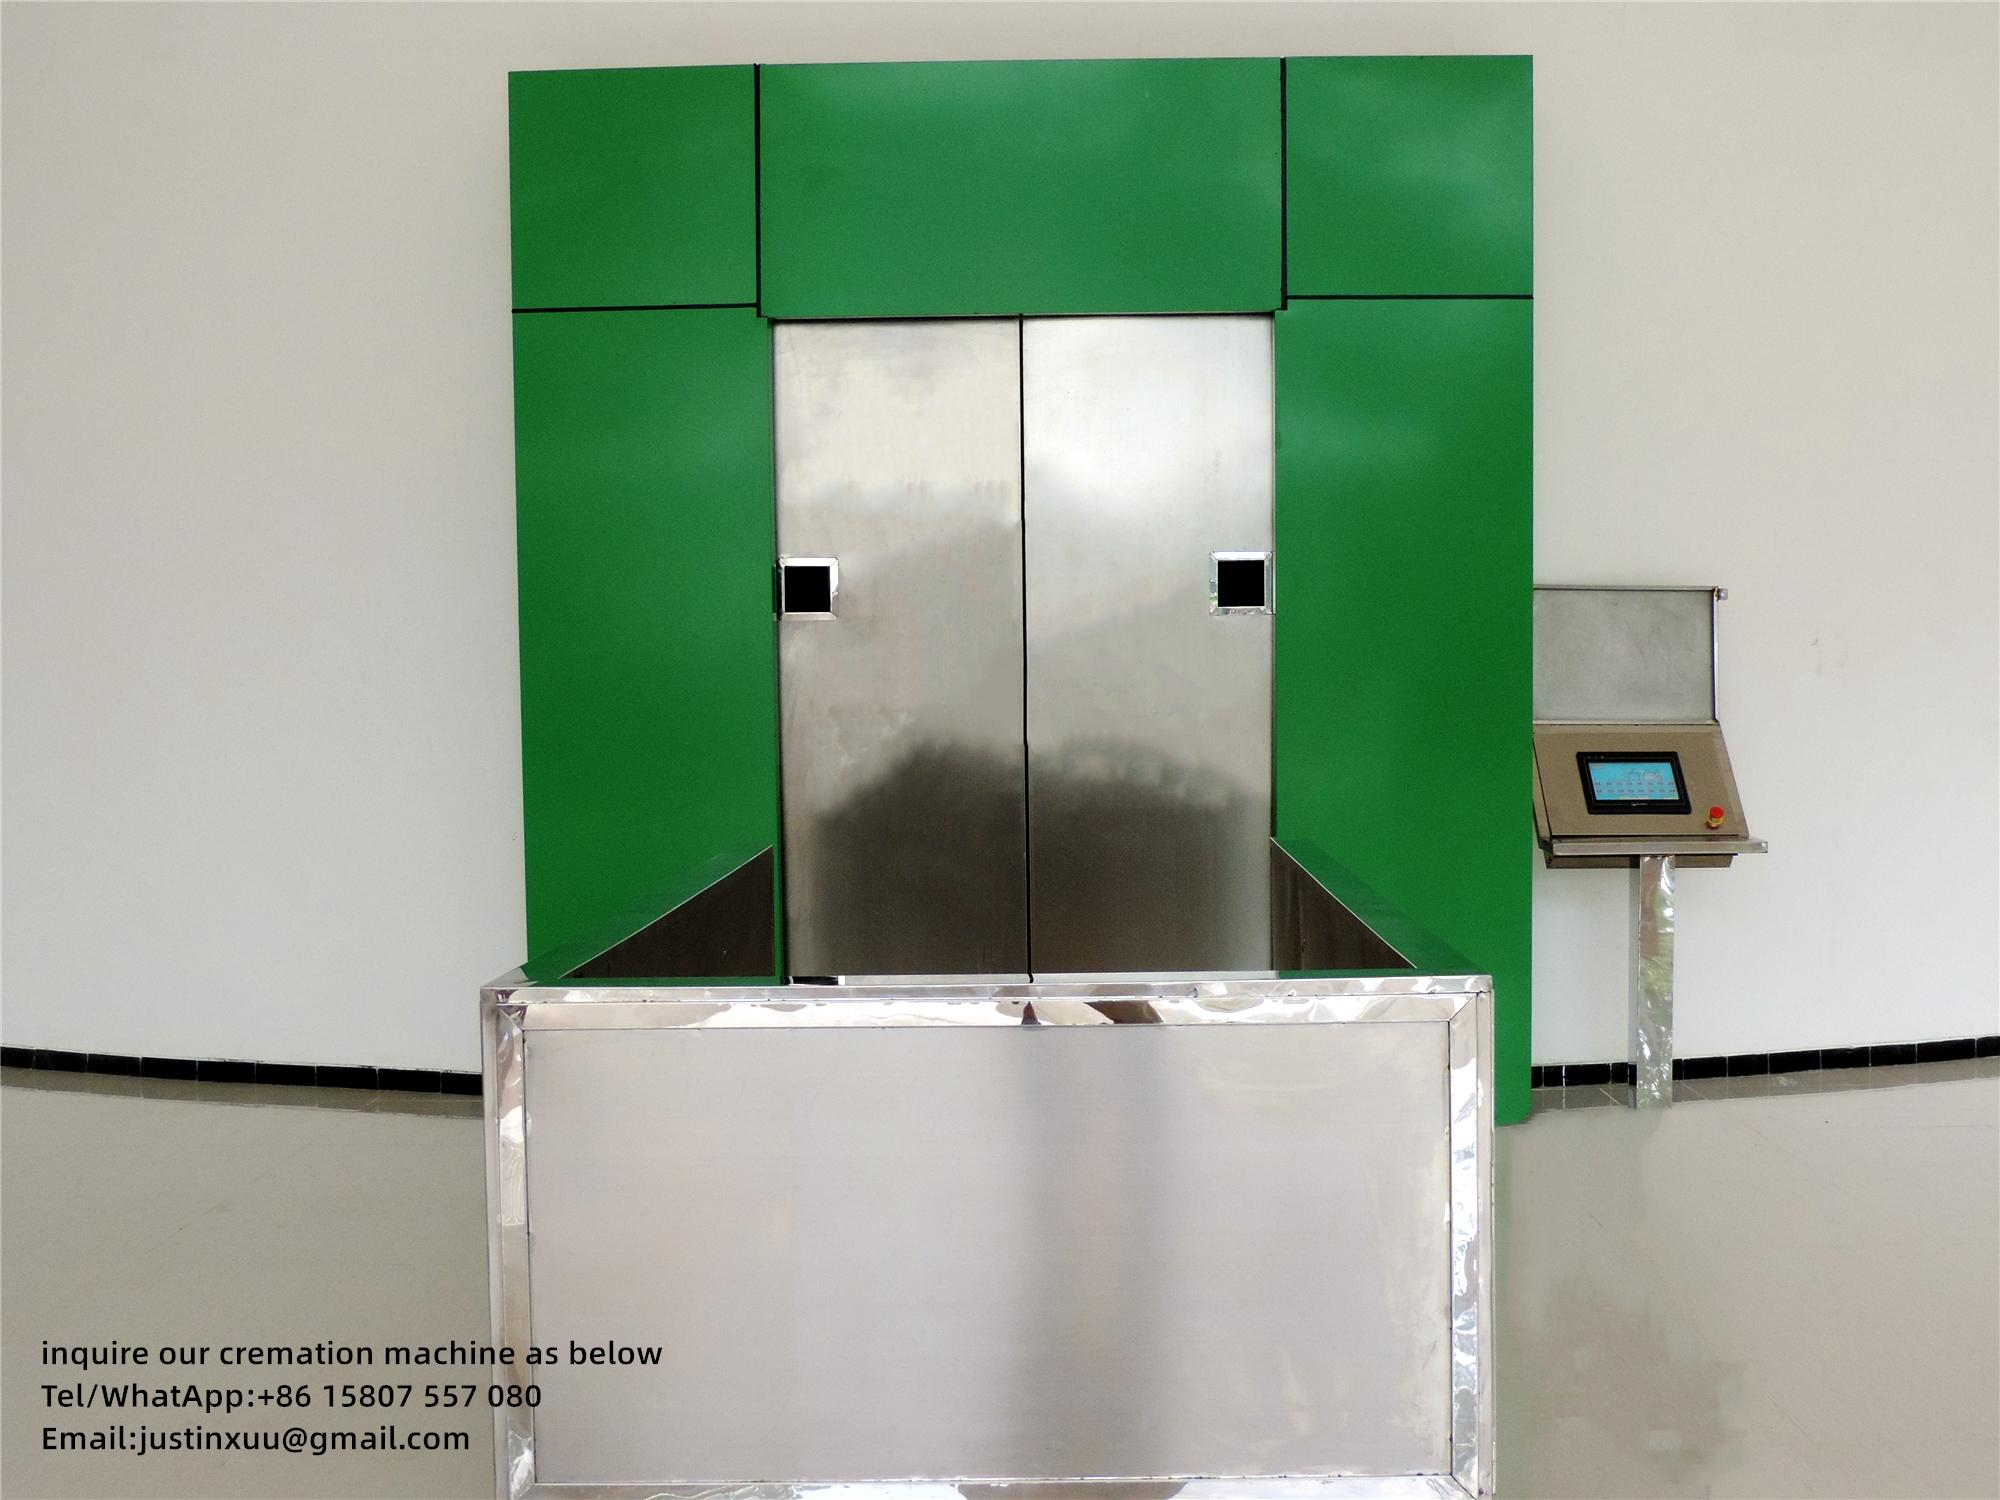 Sell incinerator container for cremation designed human for South Africa market  6